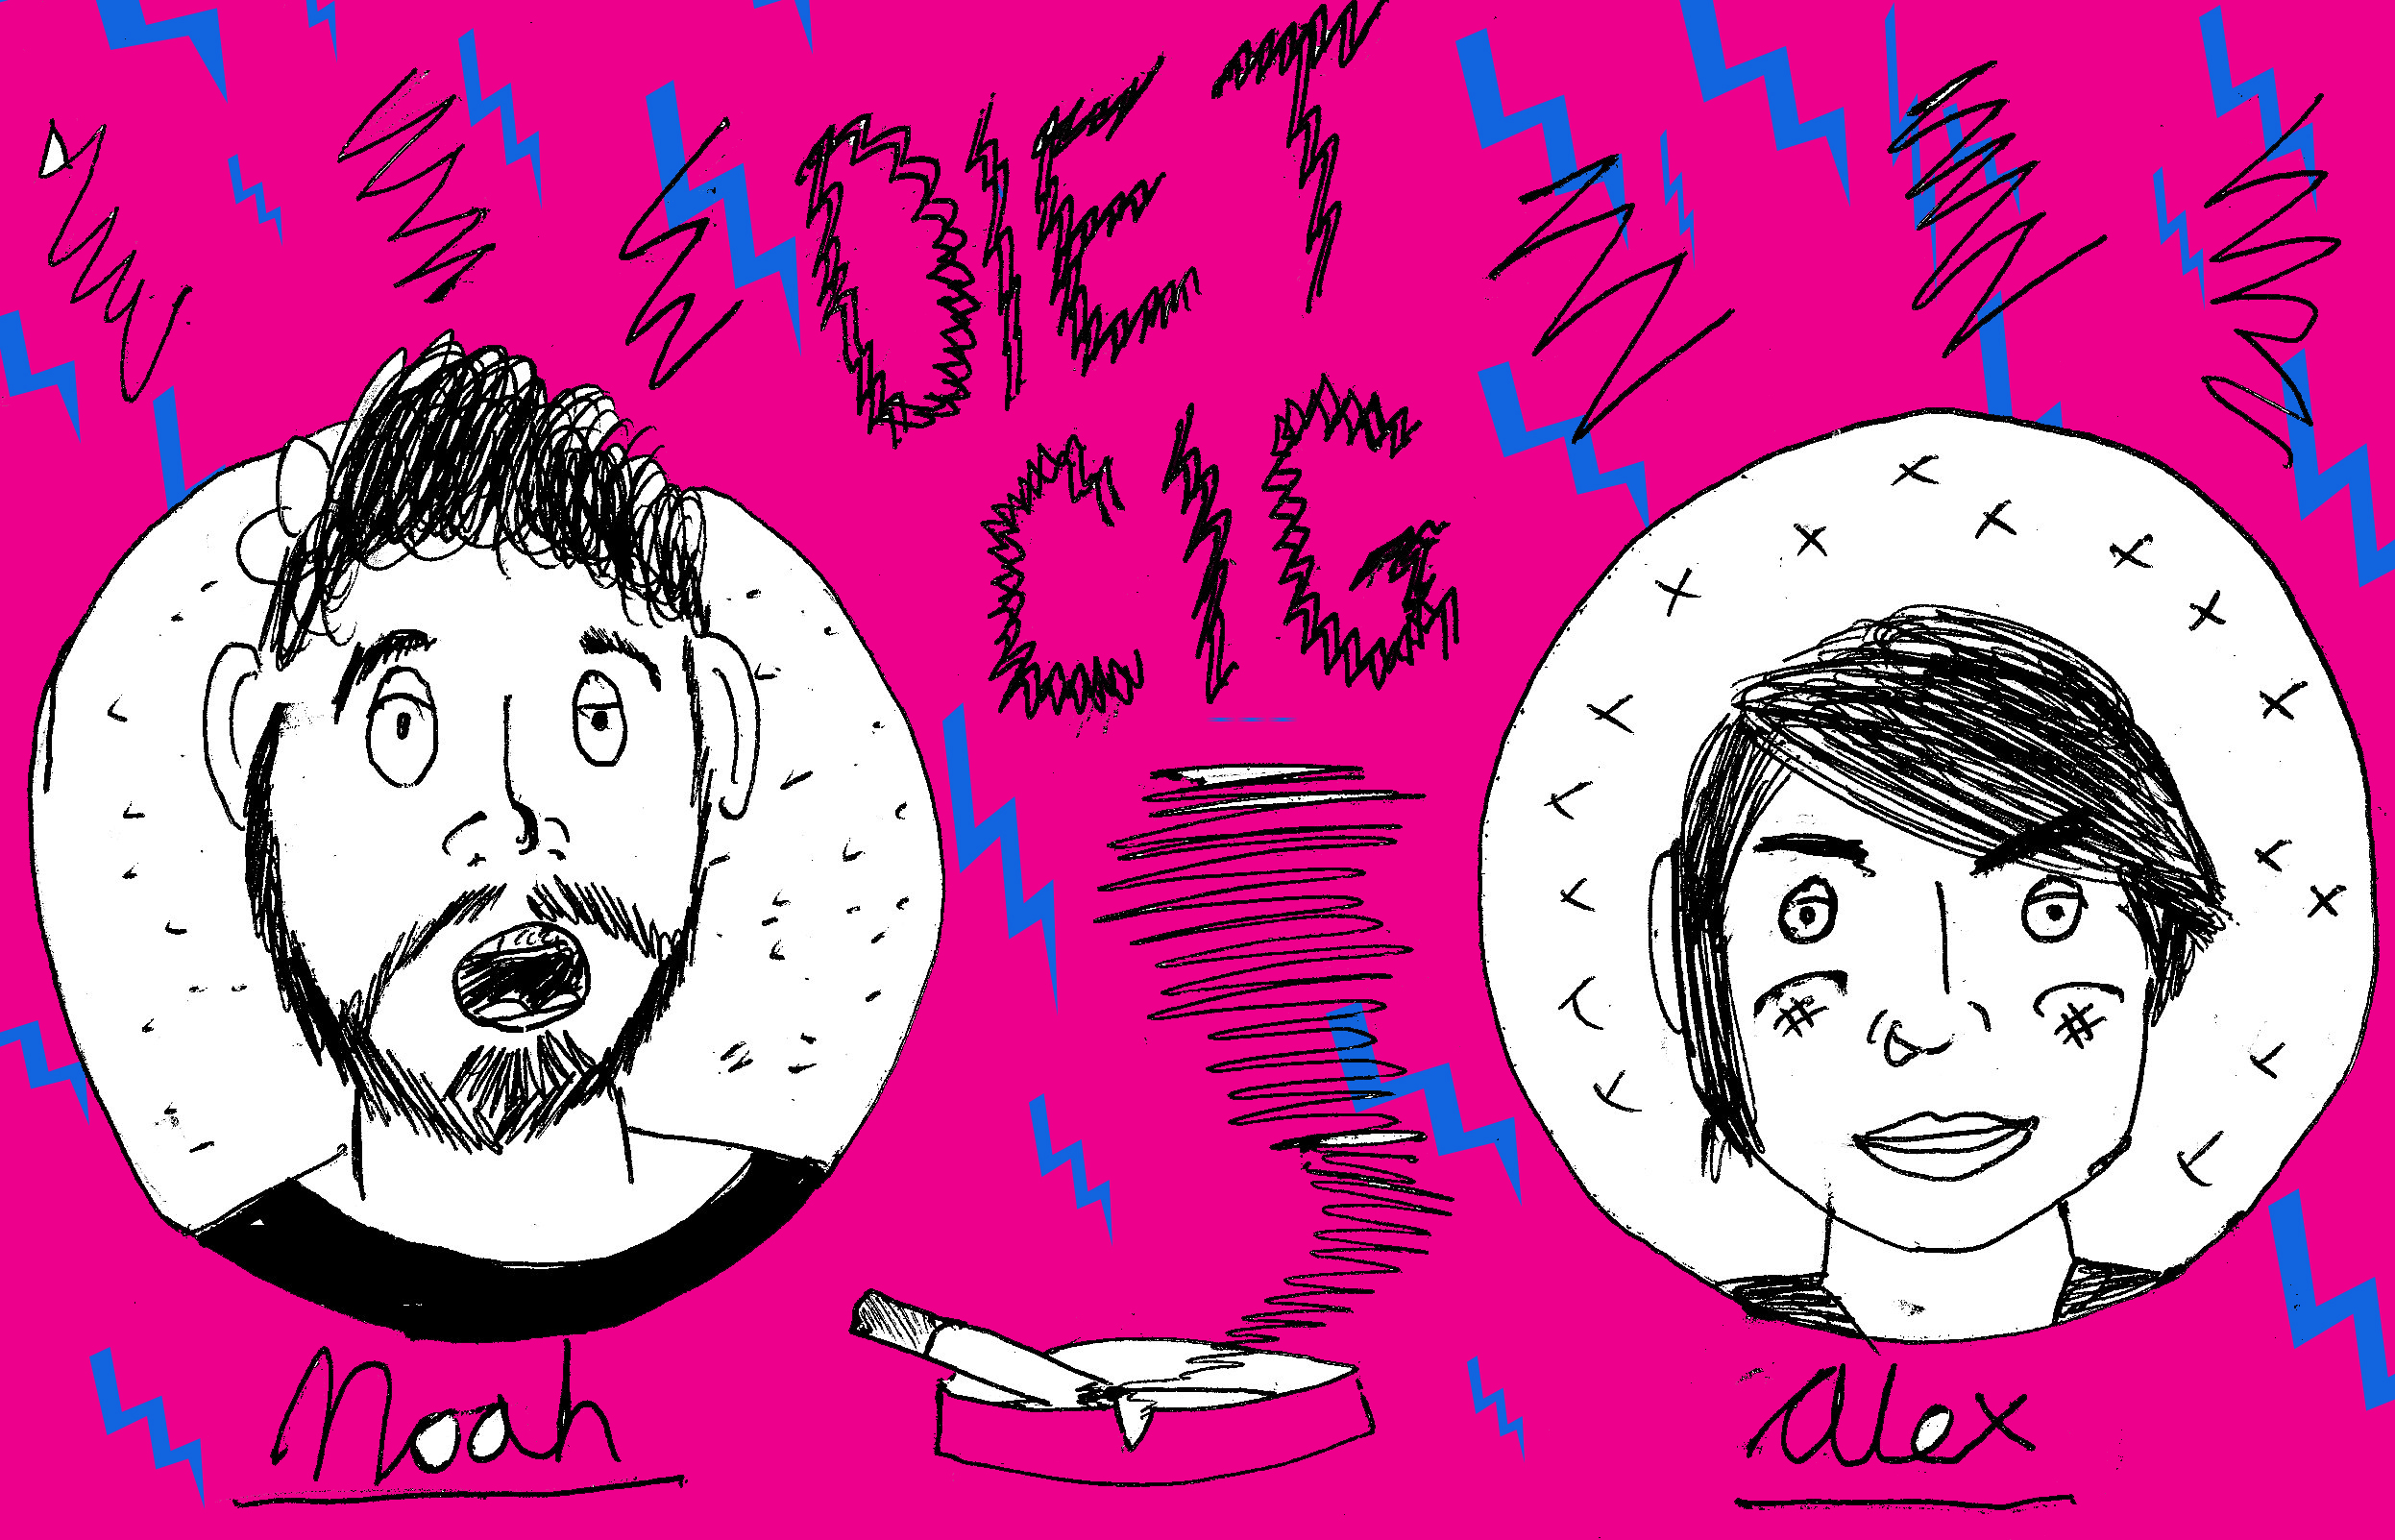 Diet Cig interview